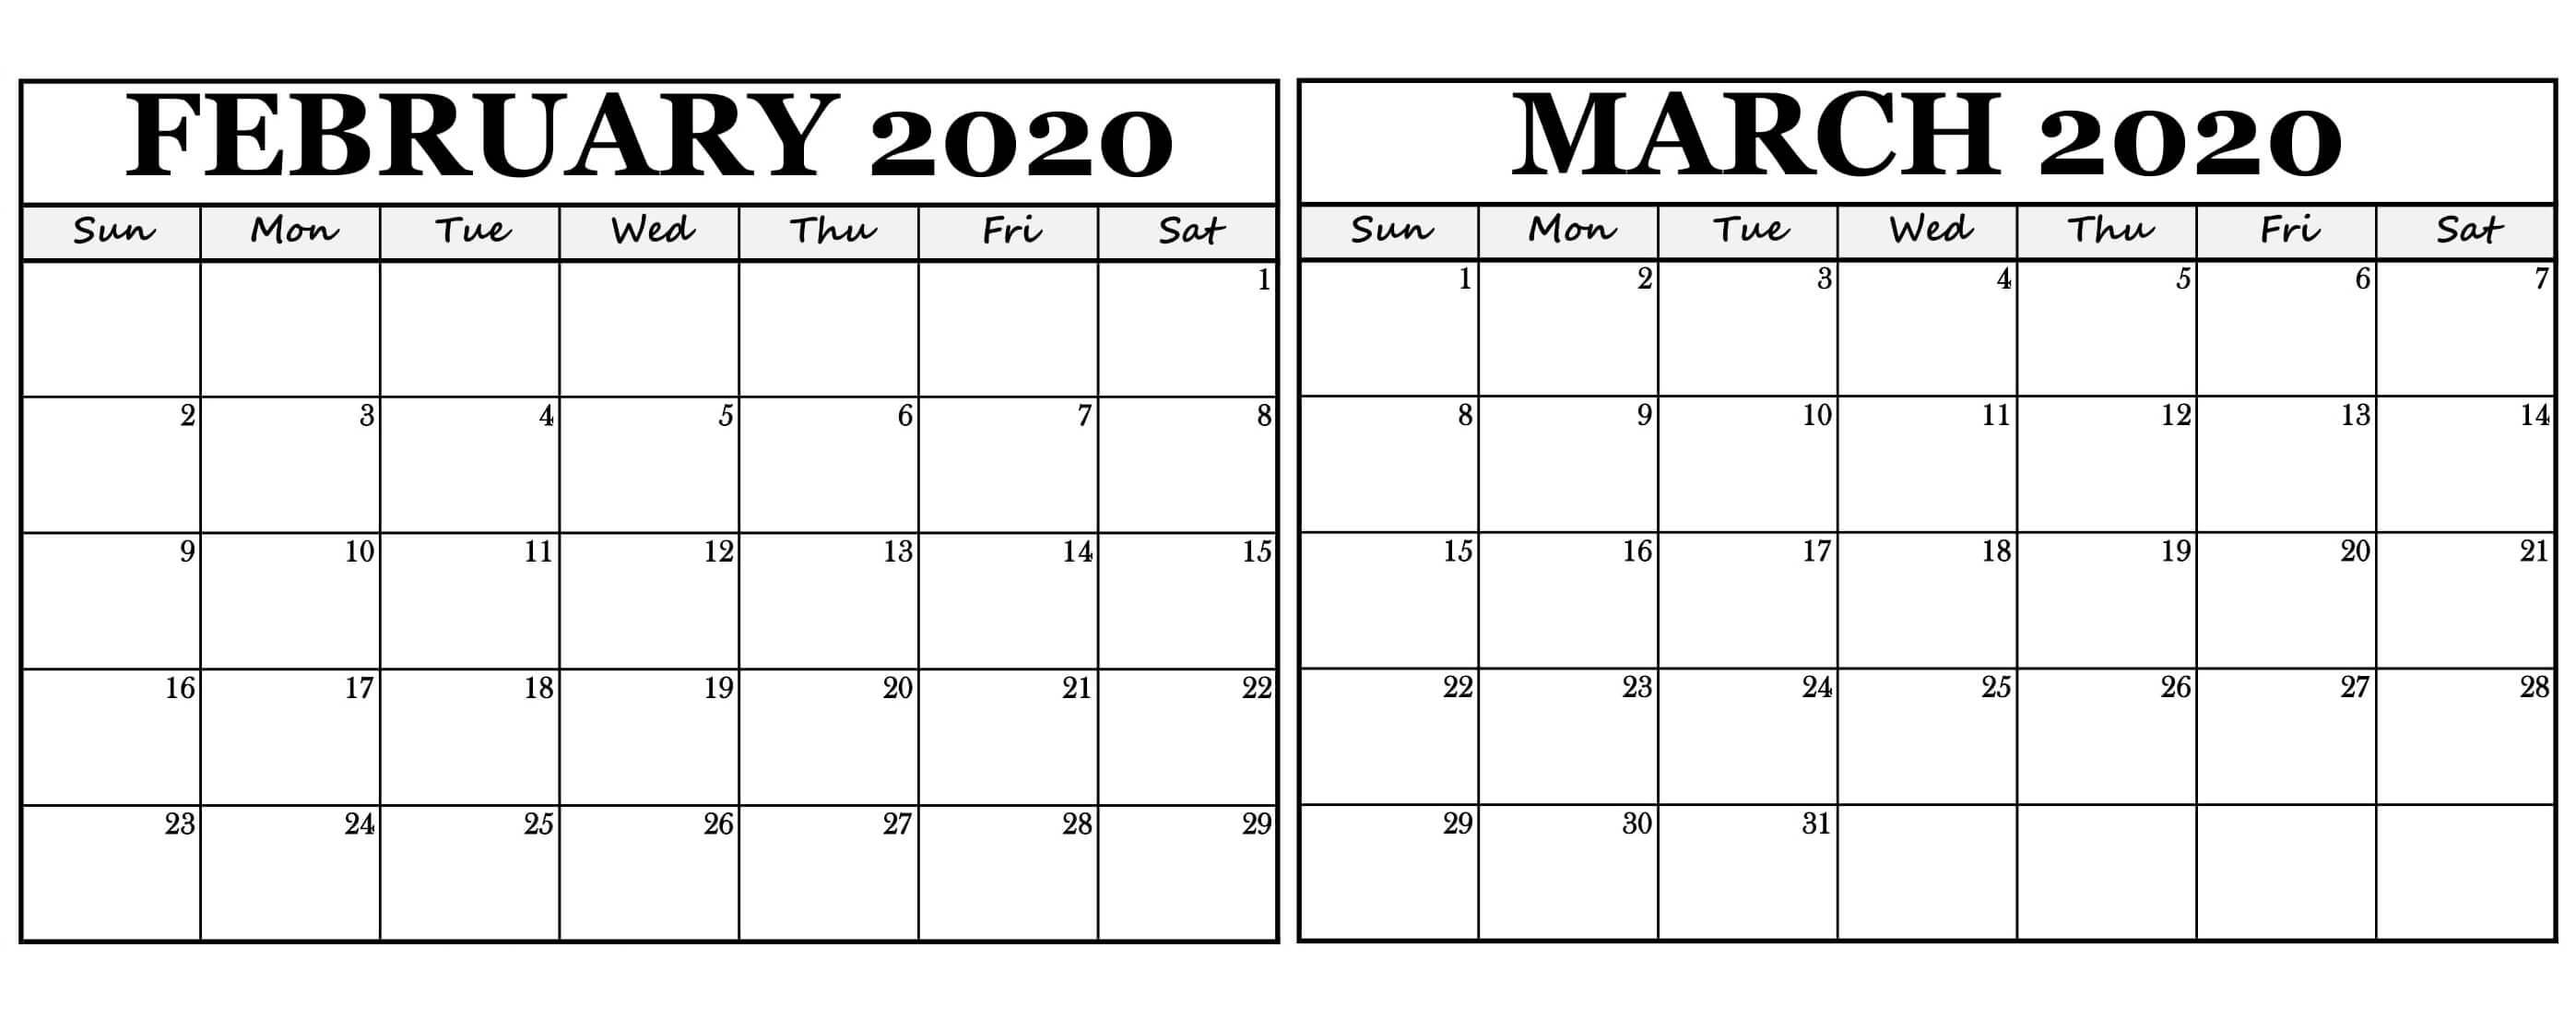 February March 2020 Calendar Template  2019 Calendars For within February And March 2020